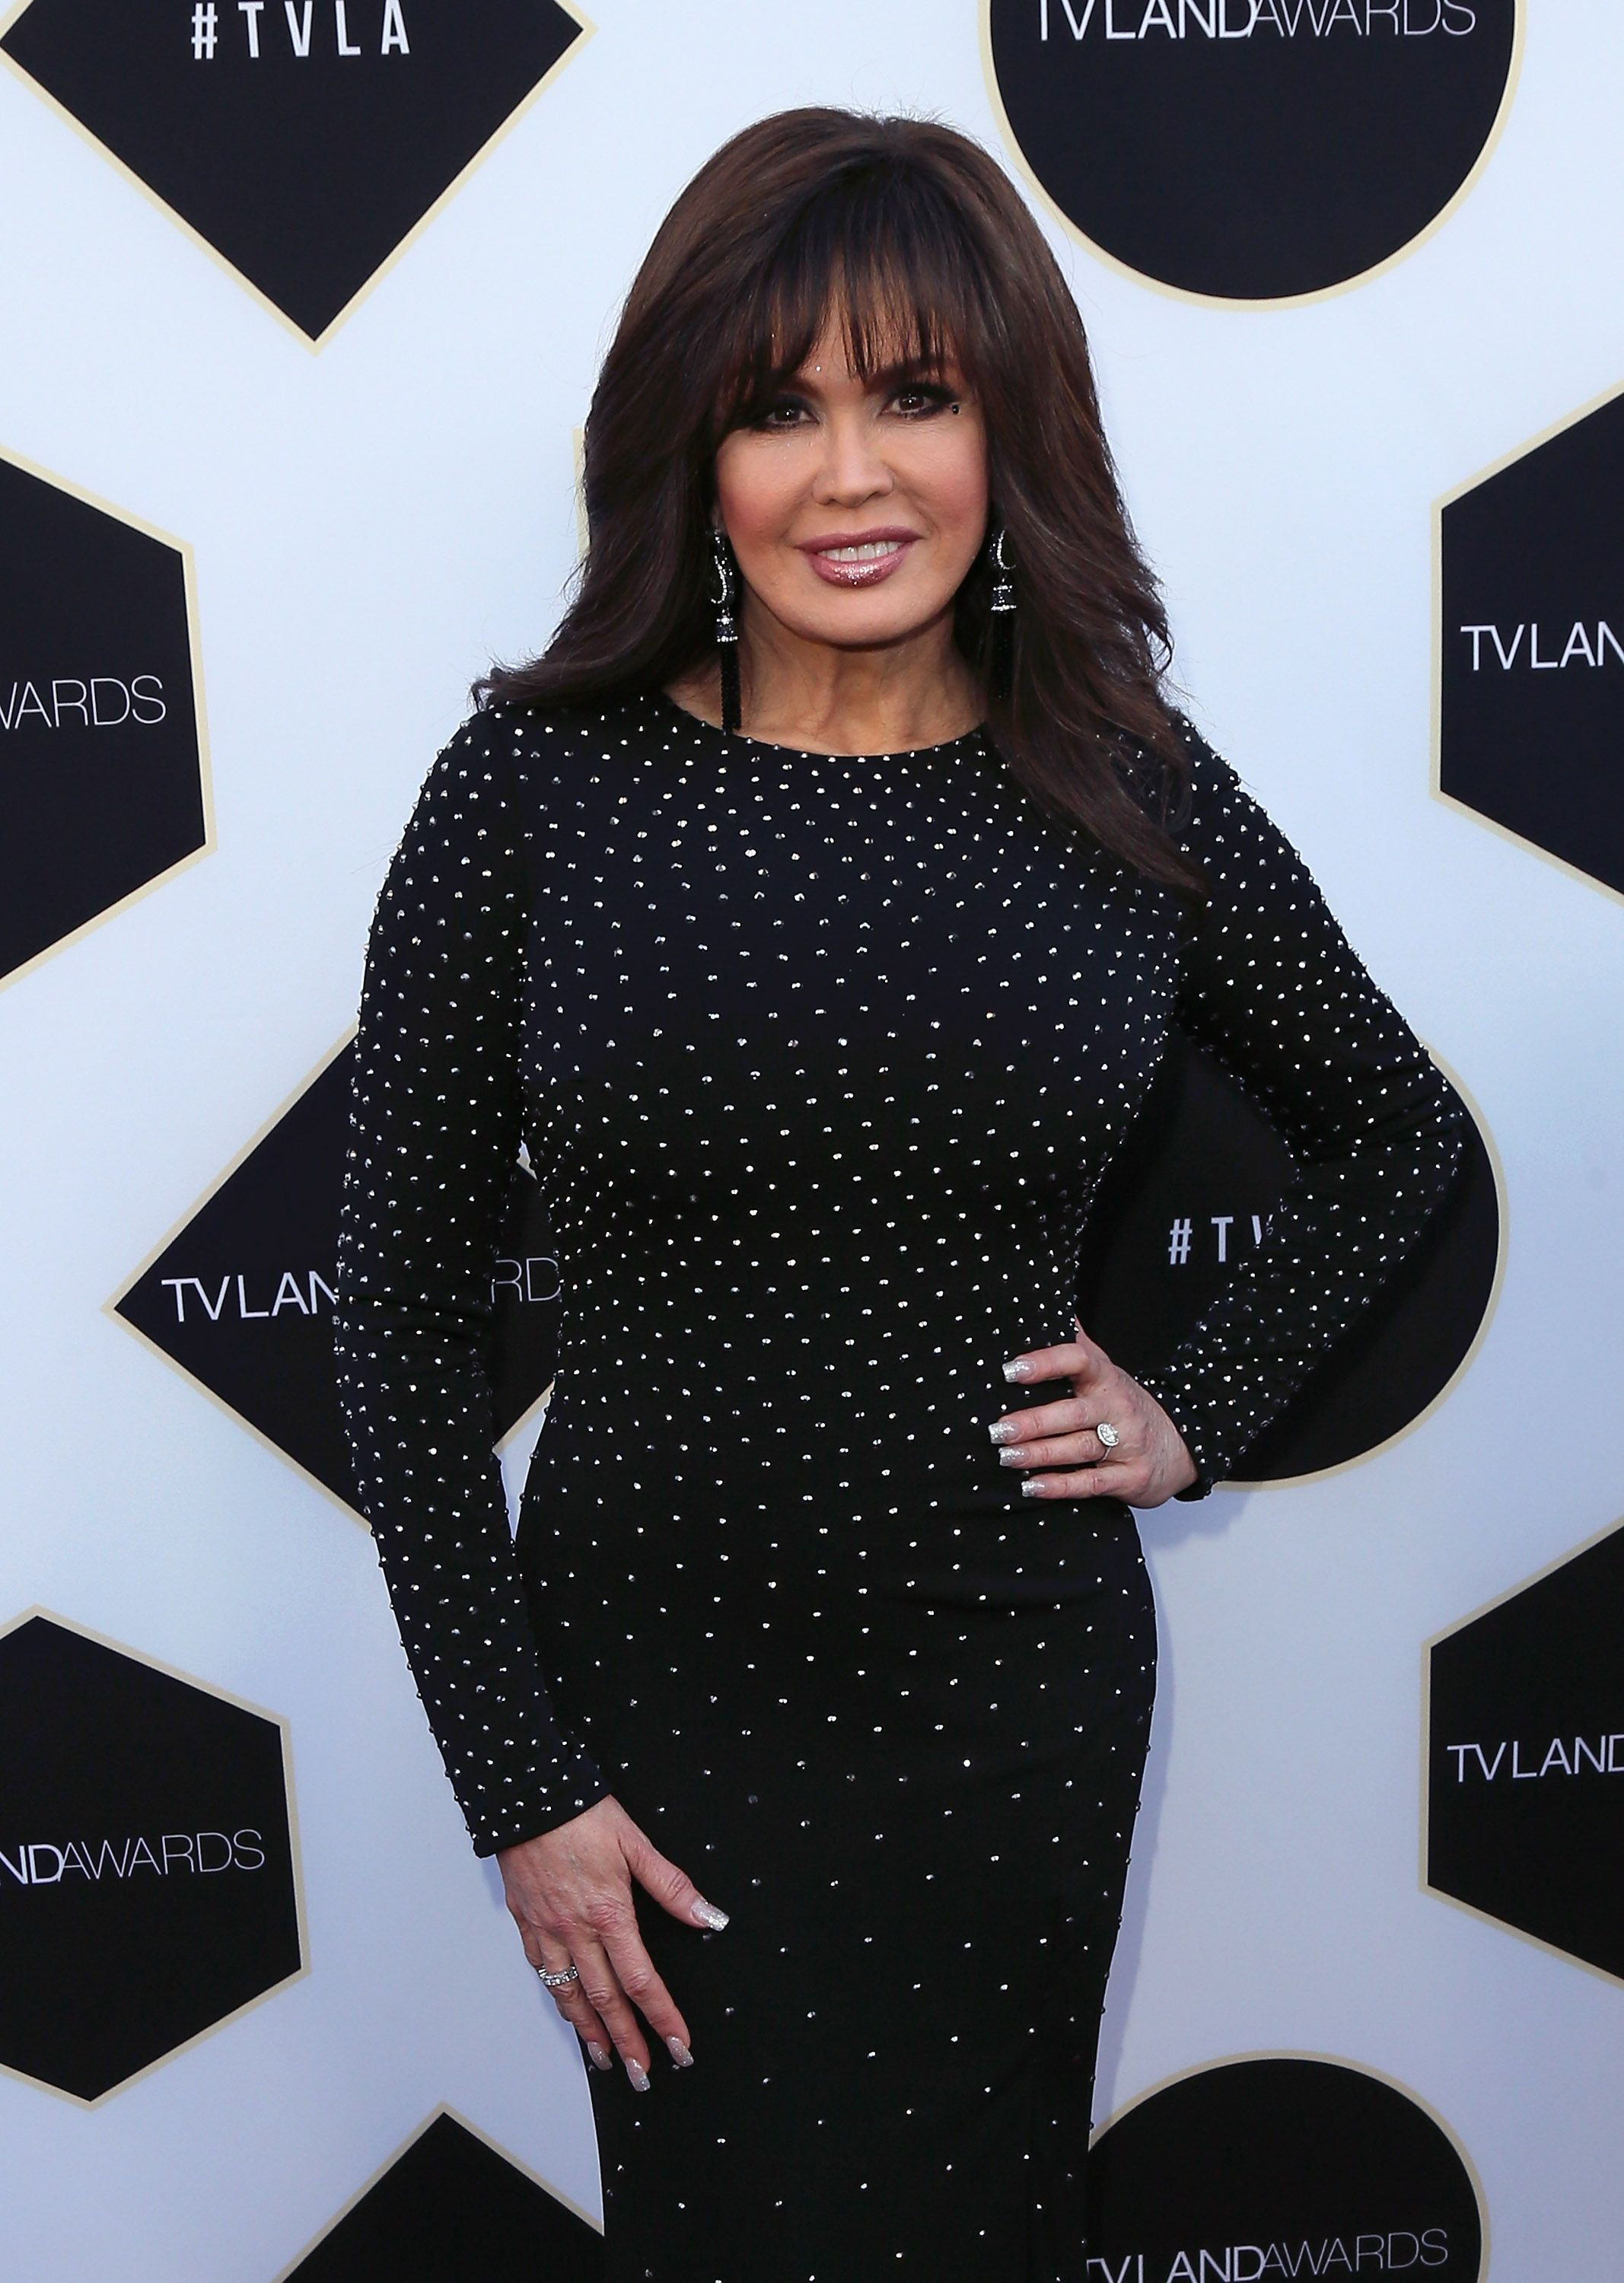 Singer Marie Osmond at the 2015 TV Land Awards at the Saban Theatre on April 11, 2015 | Photo: Getty Images